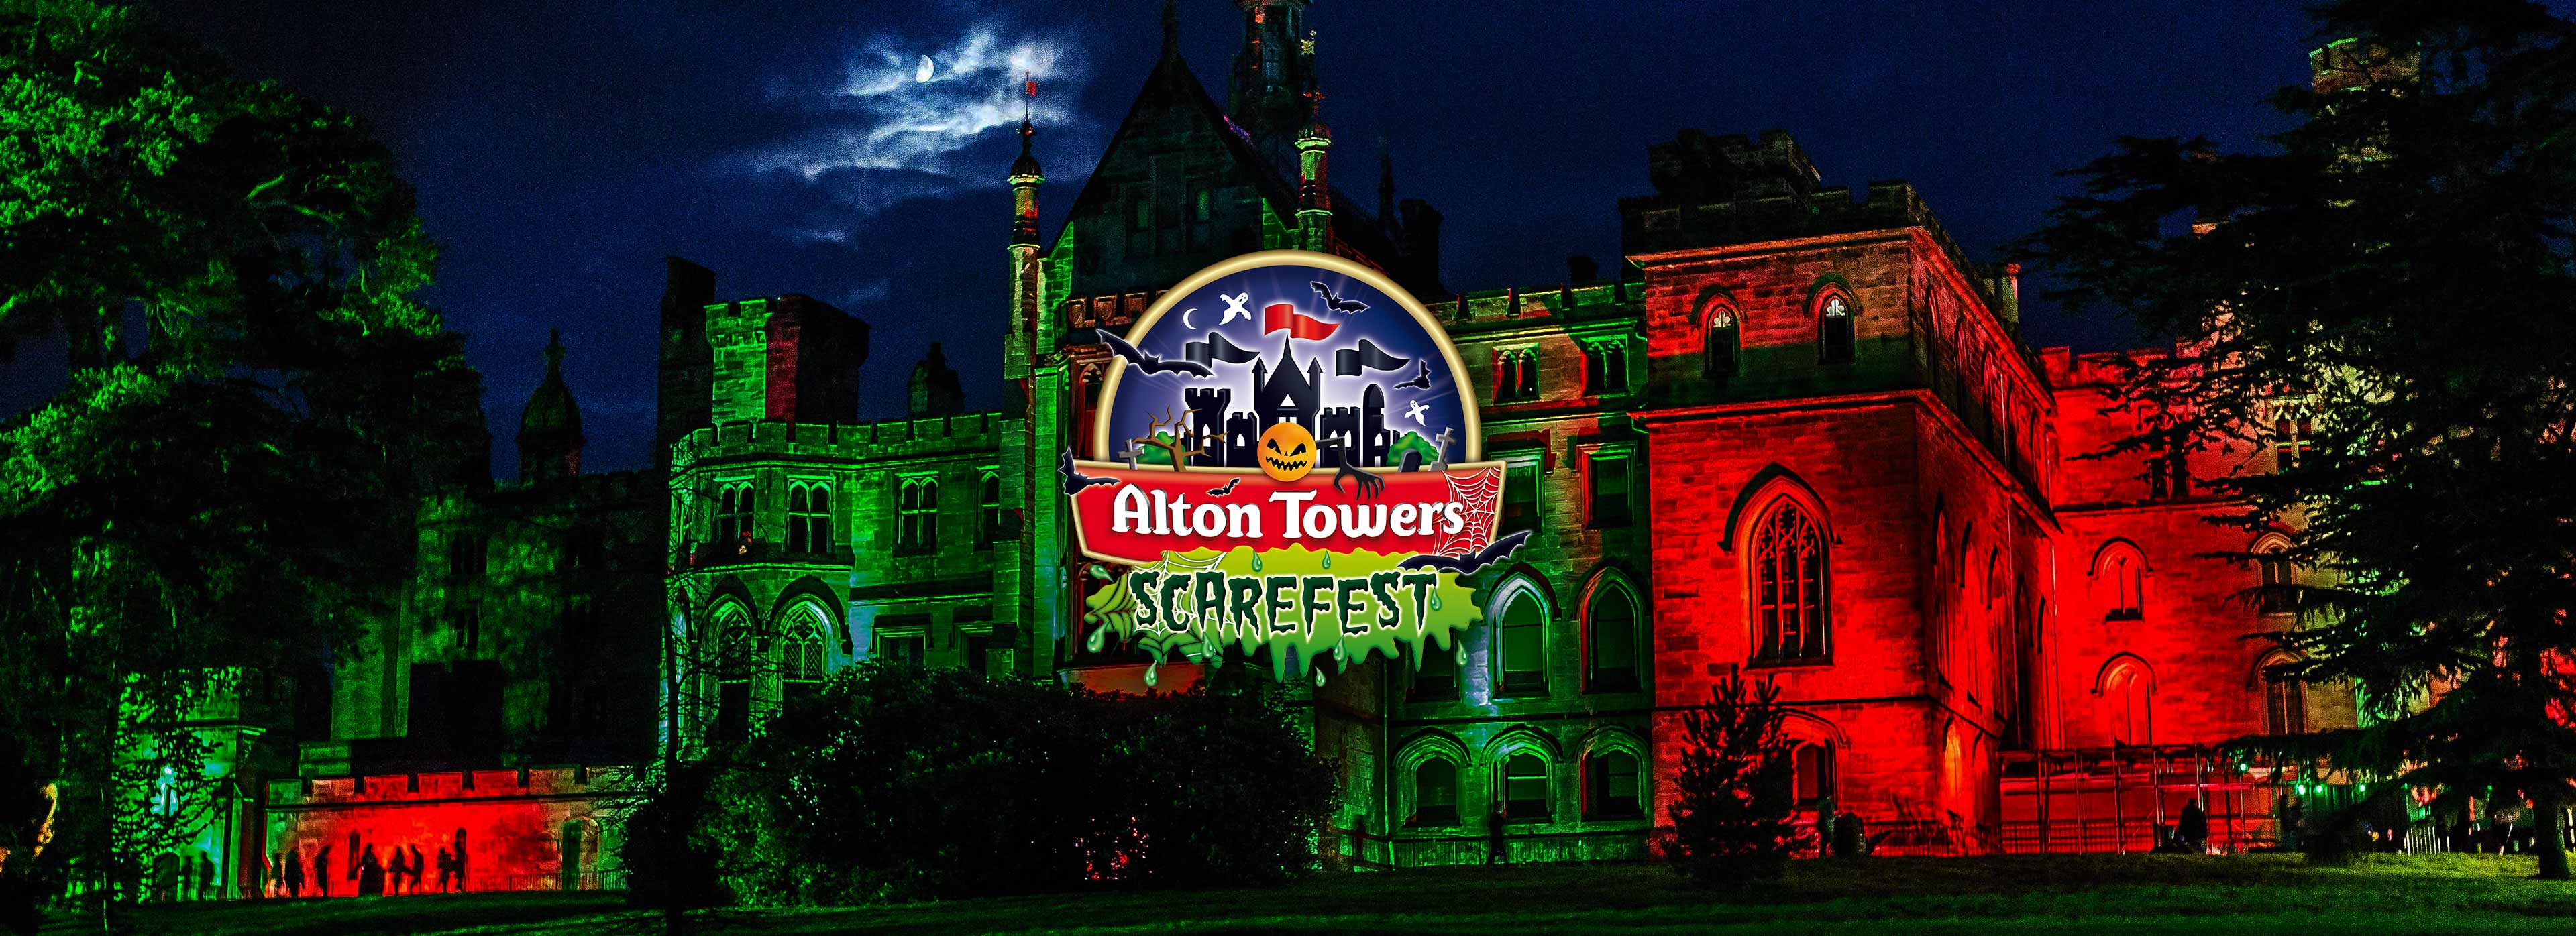 Scarefest at The Alton Towers Resort